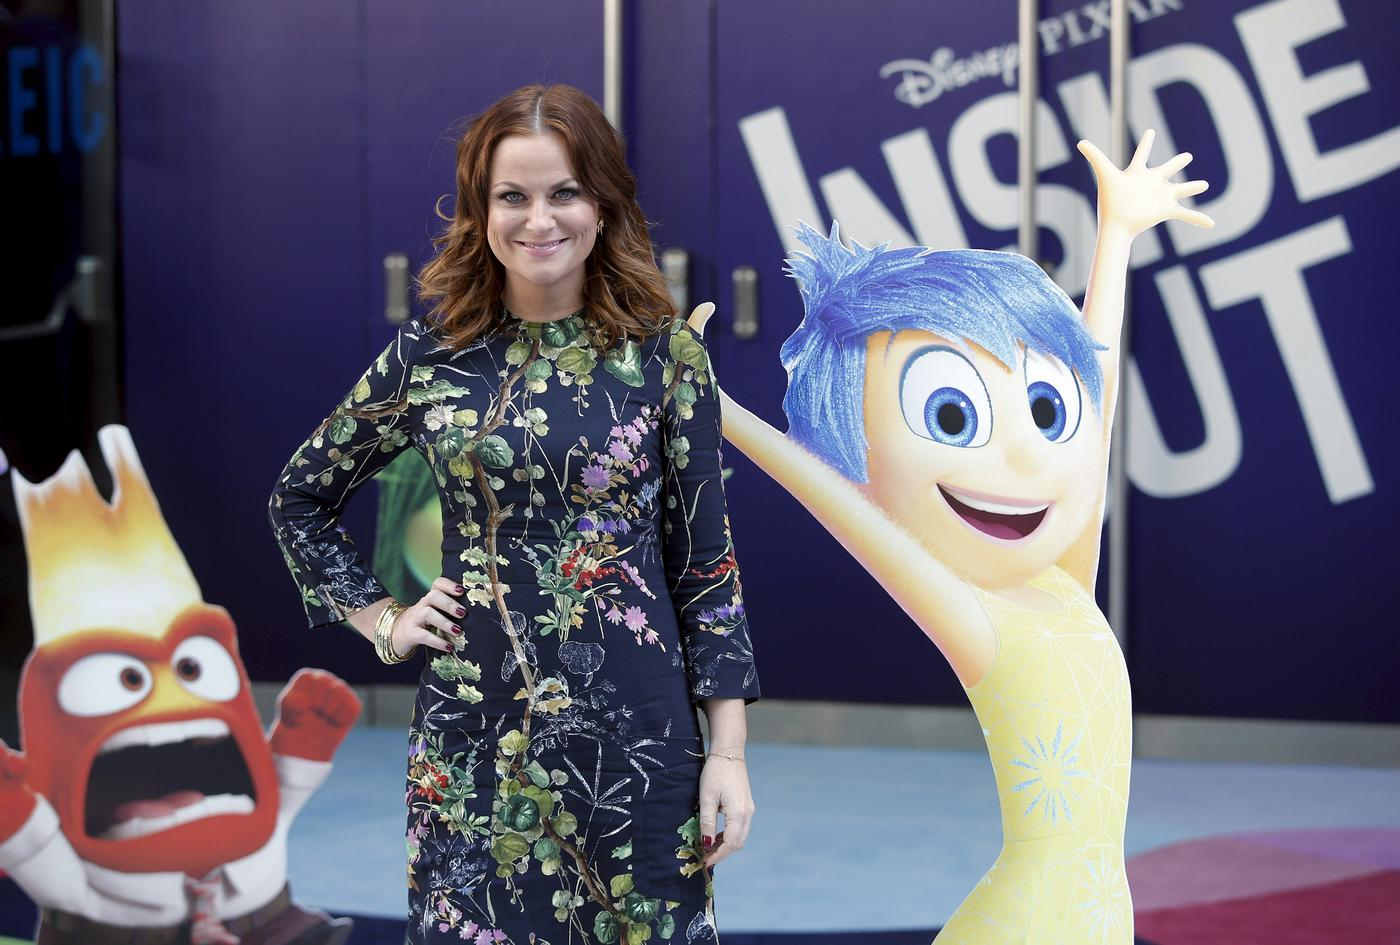 Amy Poehler admits she's a fan of British 90s comedy and we can't help but fall in love with her even more